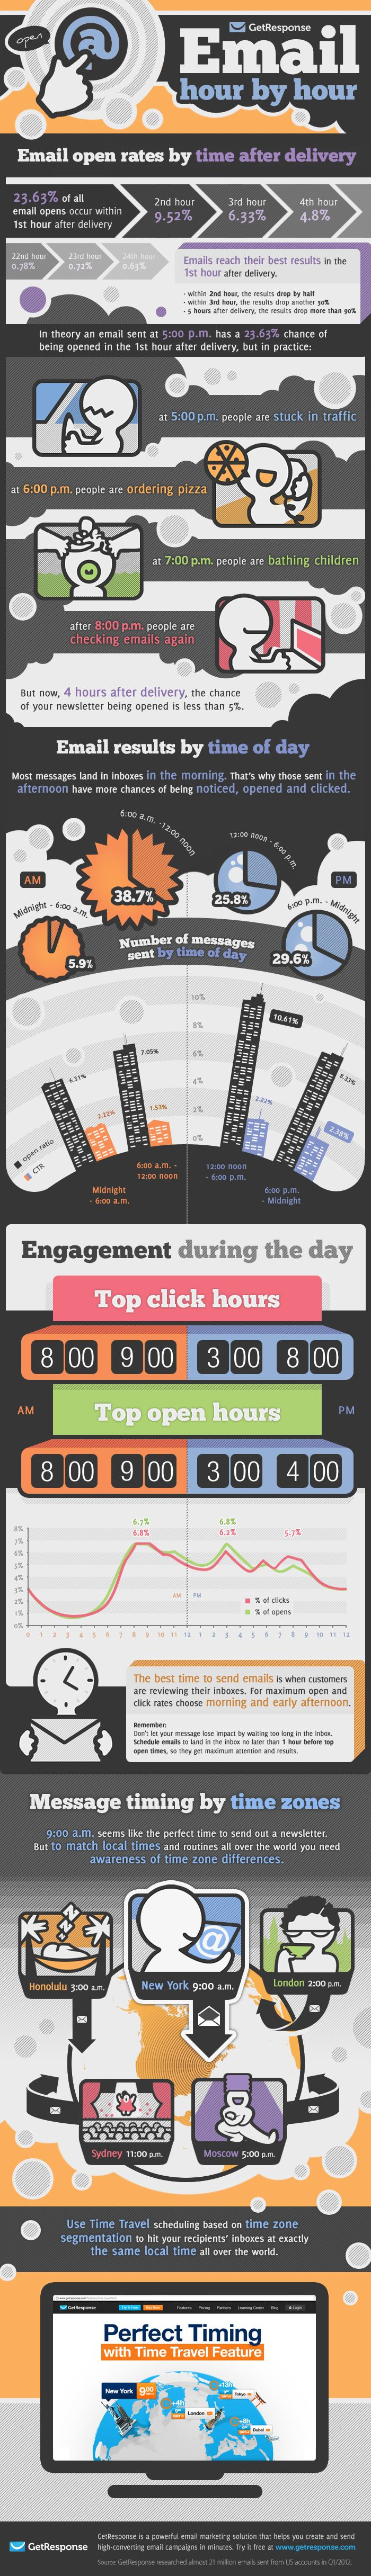 inforgraphic_Email_Opens_by_time_of_day.    Good tactical info on scheduling your email campaigns.  One consideration not mentioned is phone/chat coverage.  With such a high % of openings coming shortly after sending, take into account the availability & capacity of your staffing so you don't create spikes that cannot be serviced properly.